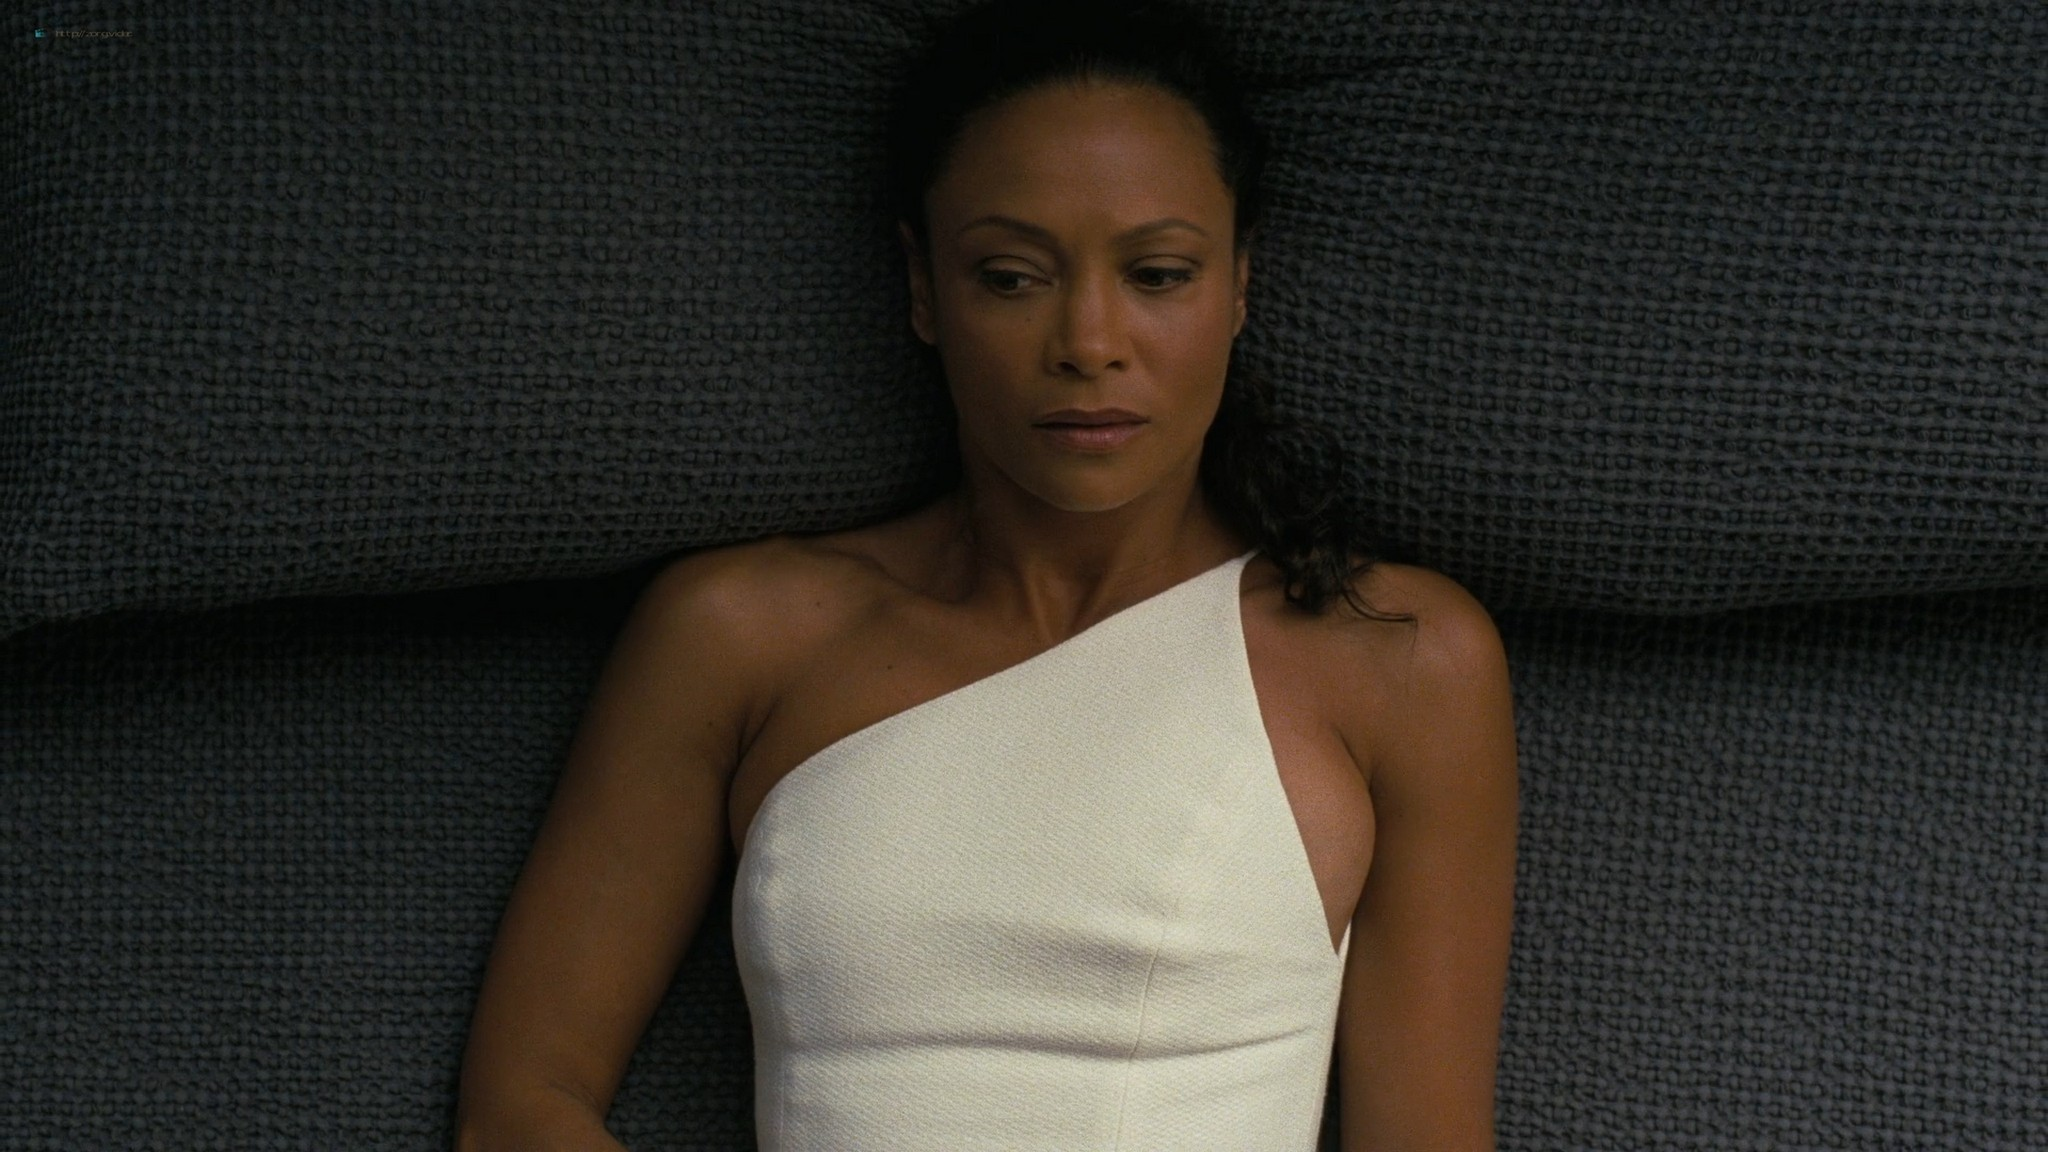 Thandie Newton nude others nude full frontal - Westworld (2020) s3e2 HD 1080p (3)